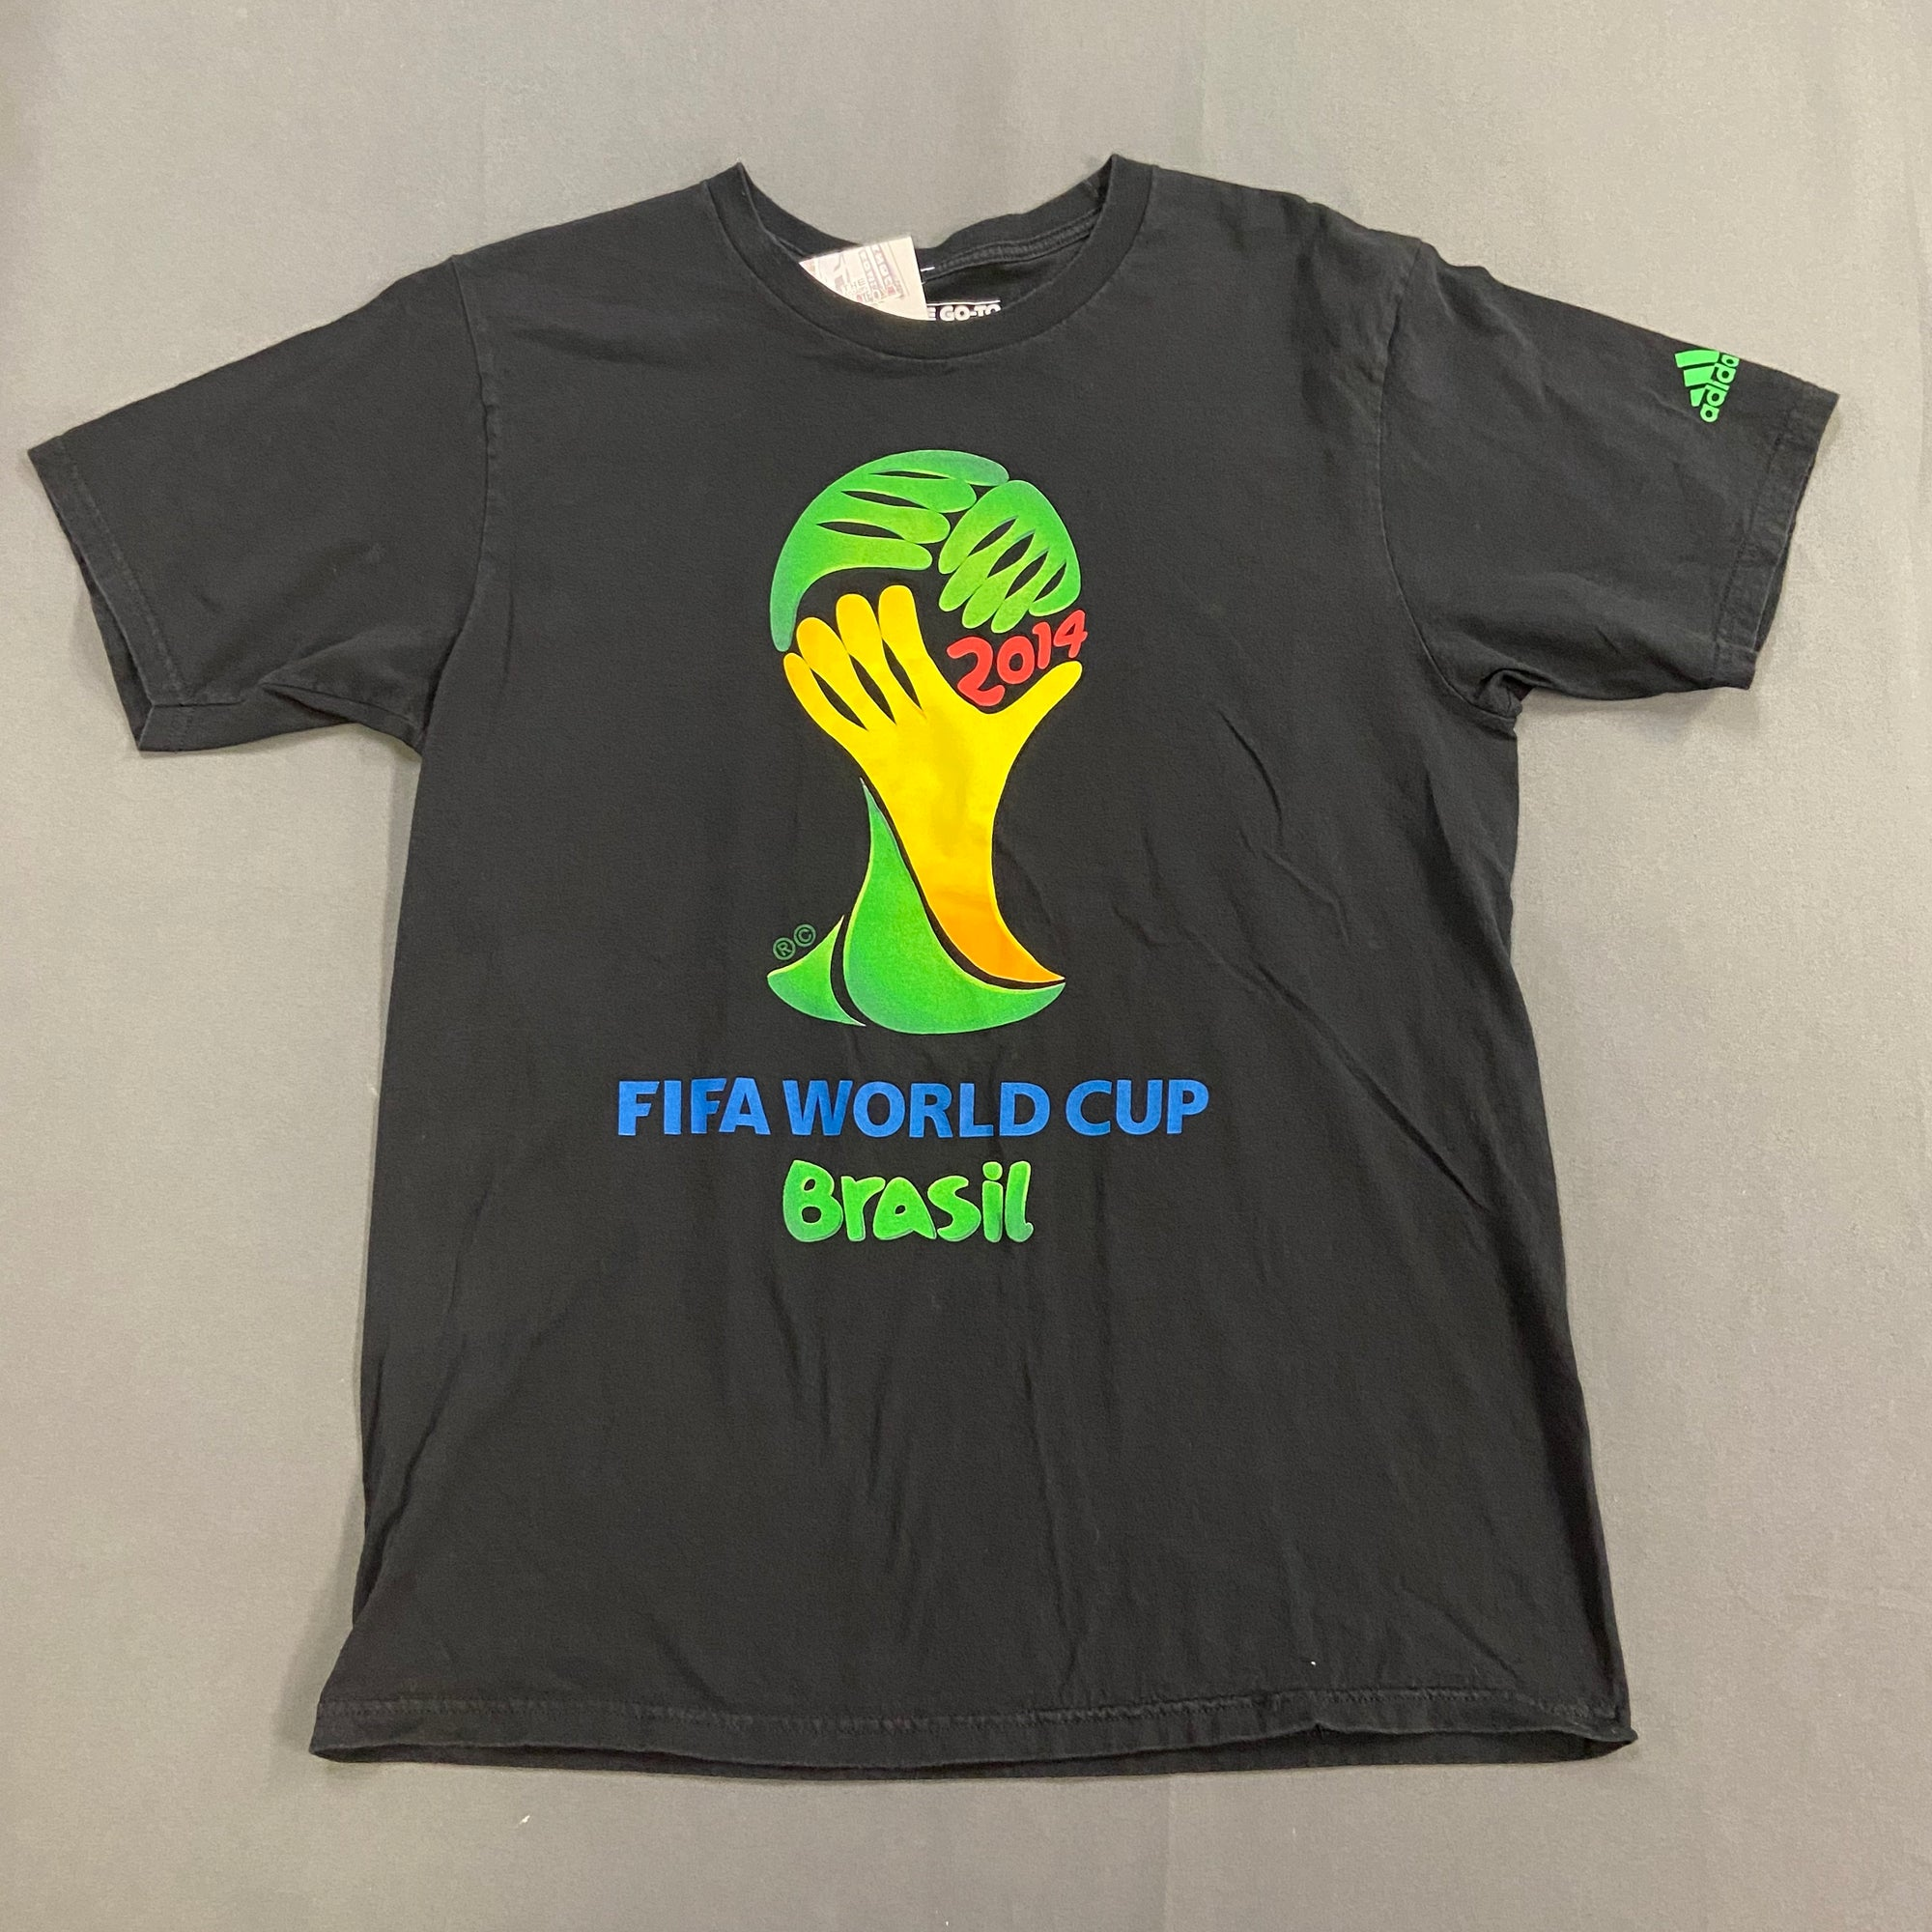 Adidas FIFA World Cup Brazil Black T Shirt Size Large